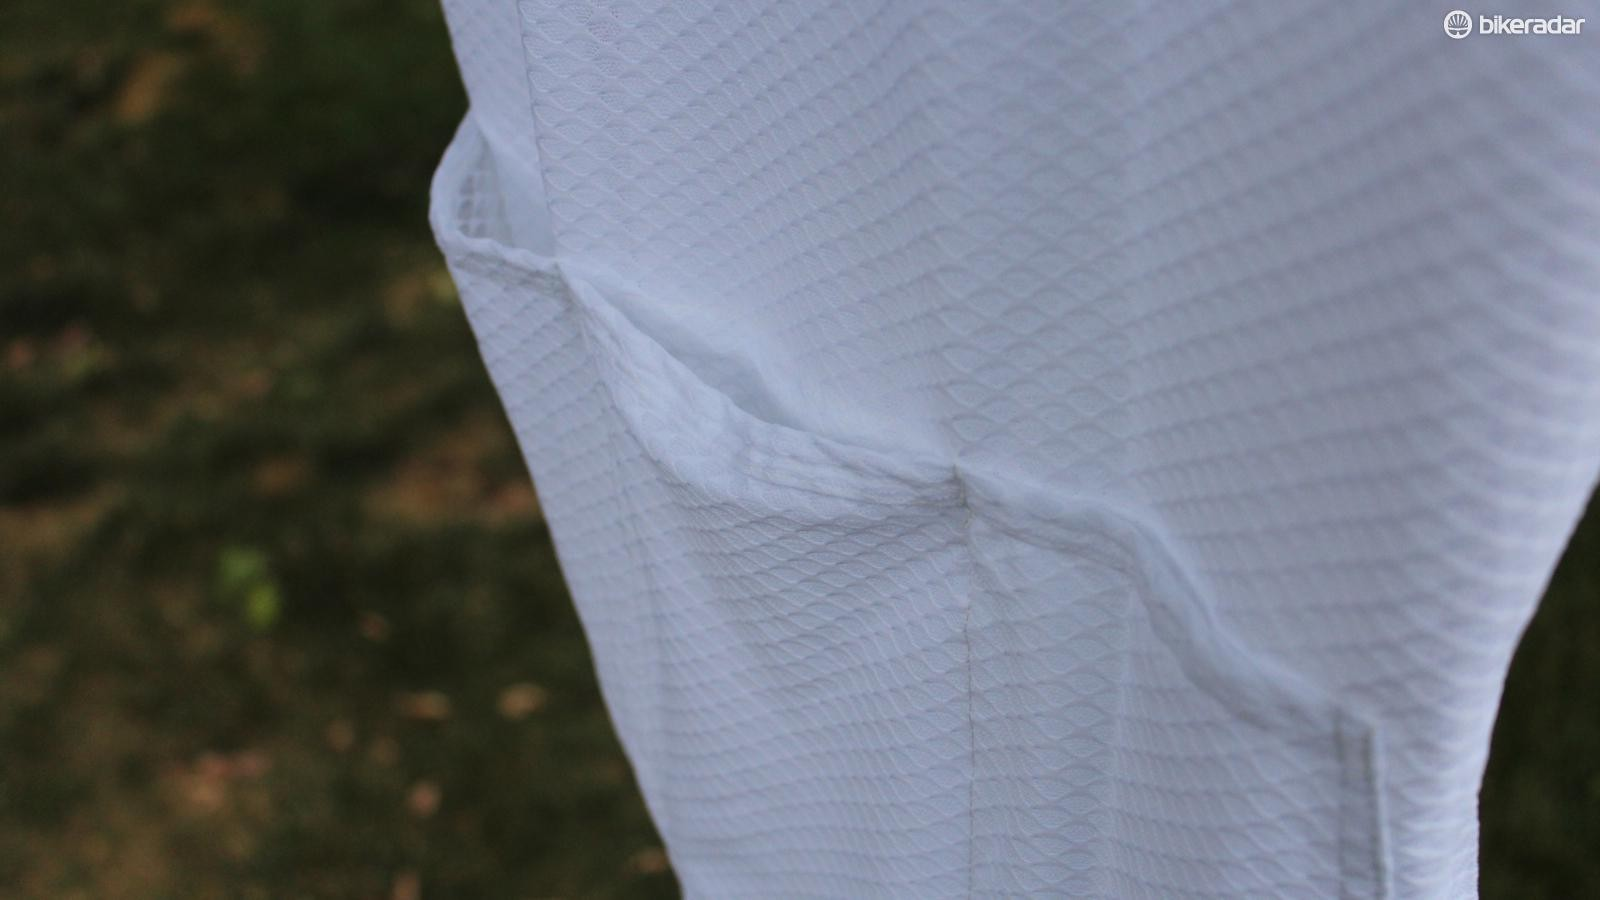 Giro Base Pockets is, as it sounds, a base layer with pockets